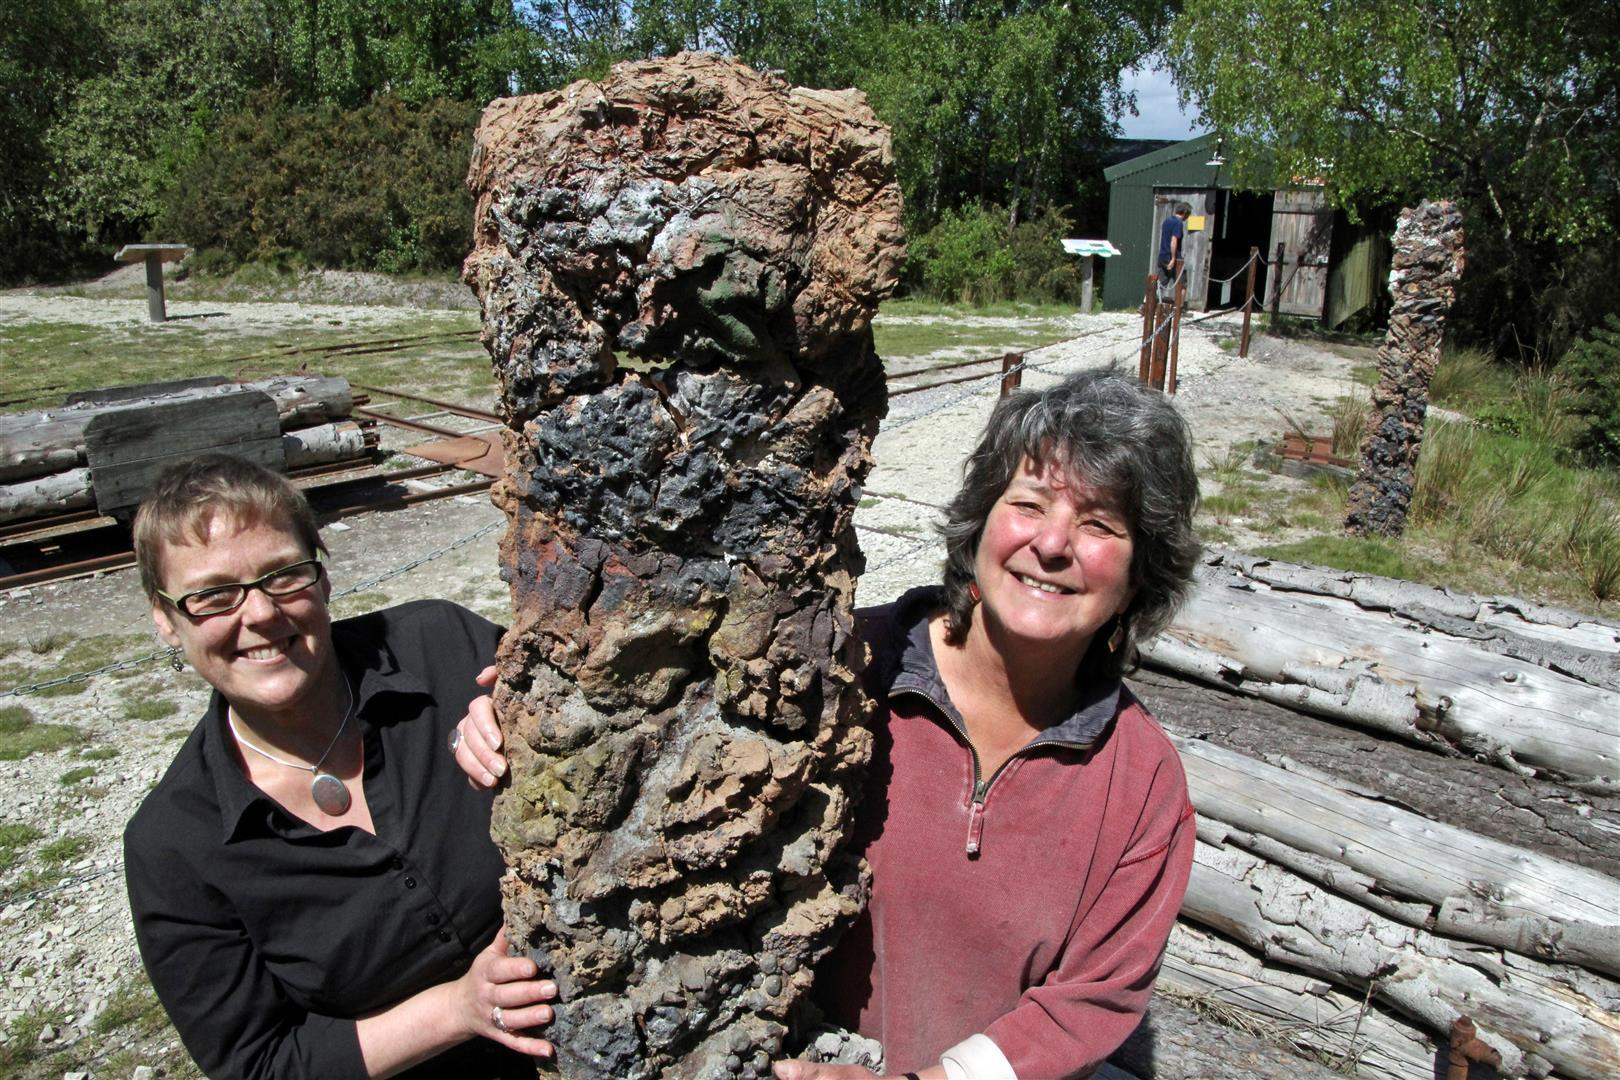 Purbeck Mineral & Mining Museum Norden - Alison Lochhead (R) & Clare Randall.